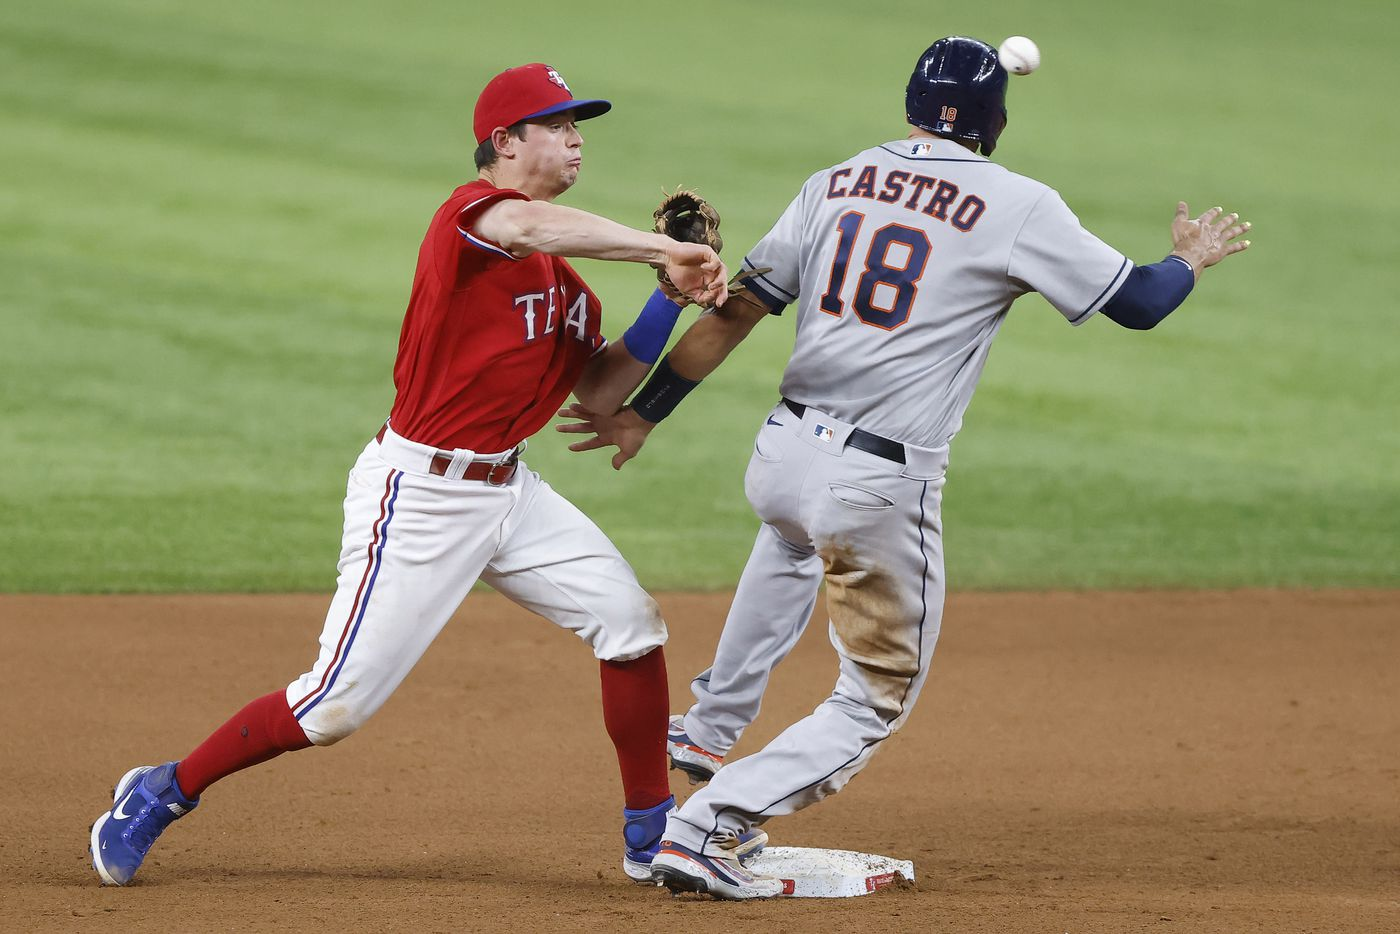 Texas Rangers second baseman Nick Solak (15) turns the front end of a double play attempt to get Houston Astros catcher Jason Castro (18) at second in the the seventh inning at Globe Life Field in Arlington, Texas, Friday, May 21, 2021. Houston Astros batter Jose Altuve was safe at first. (Tom Fox/The Dallas Morning News)